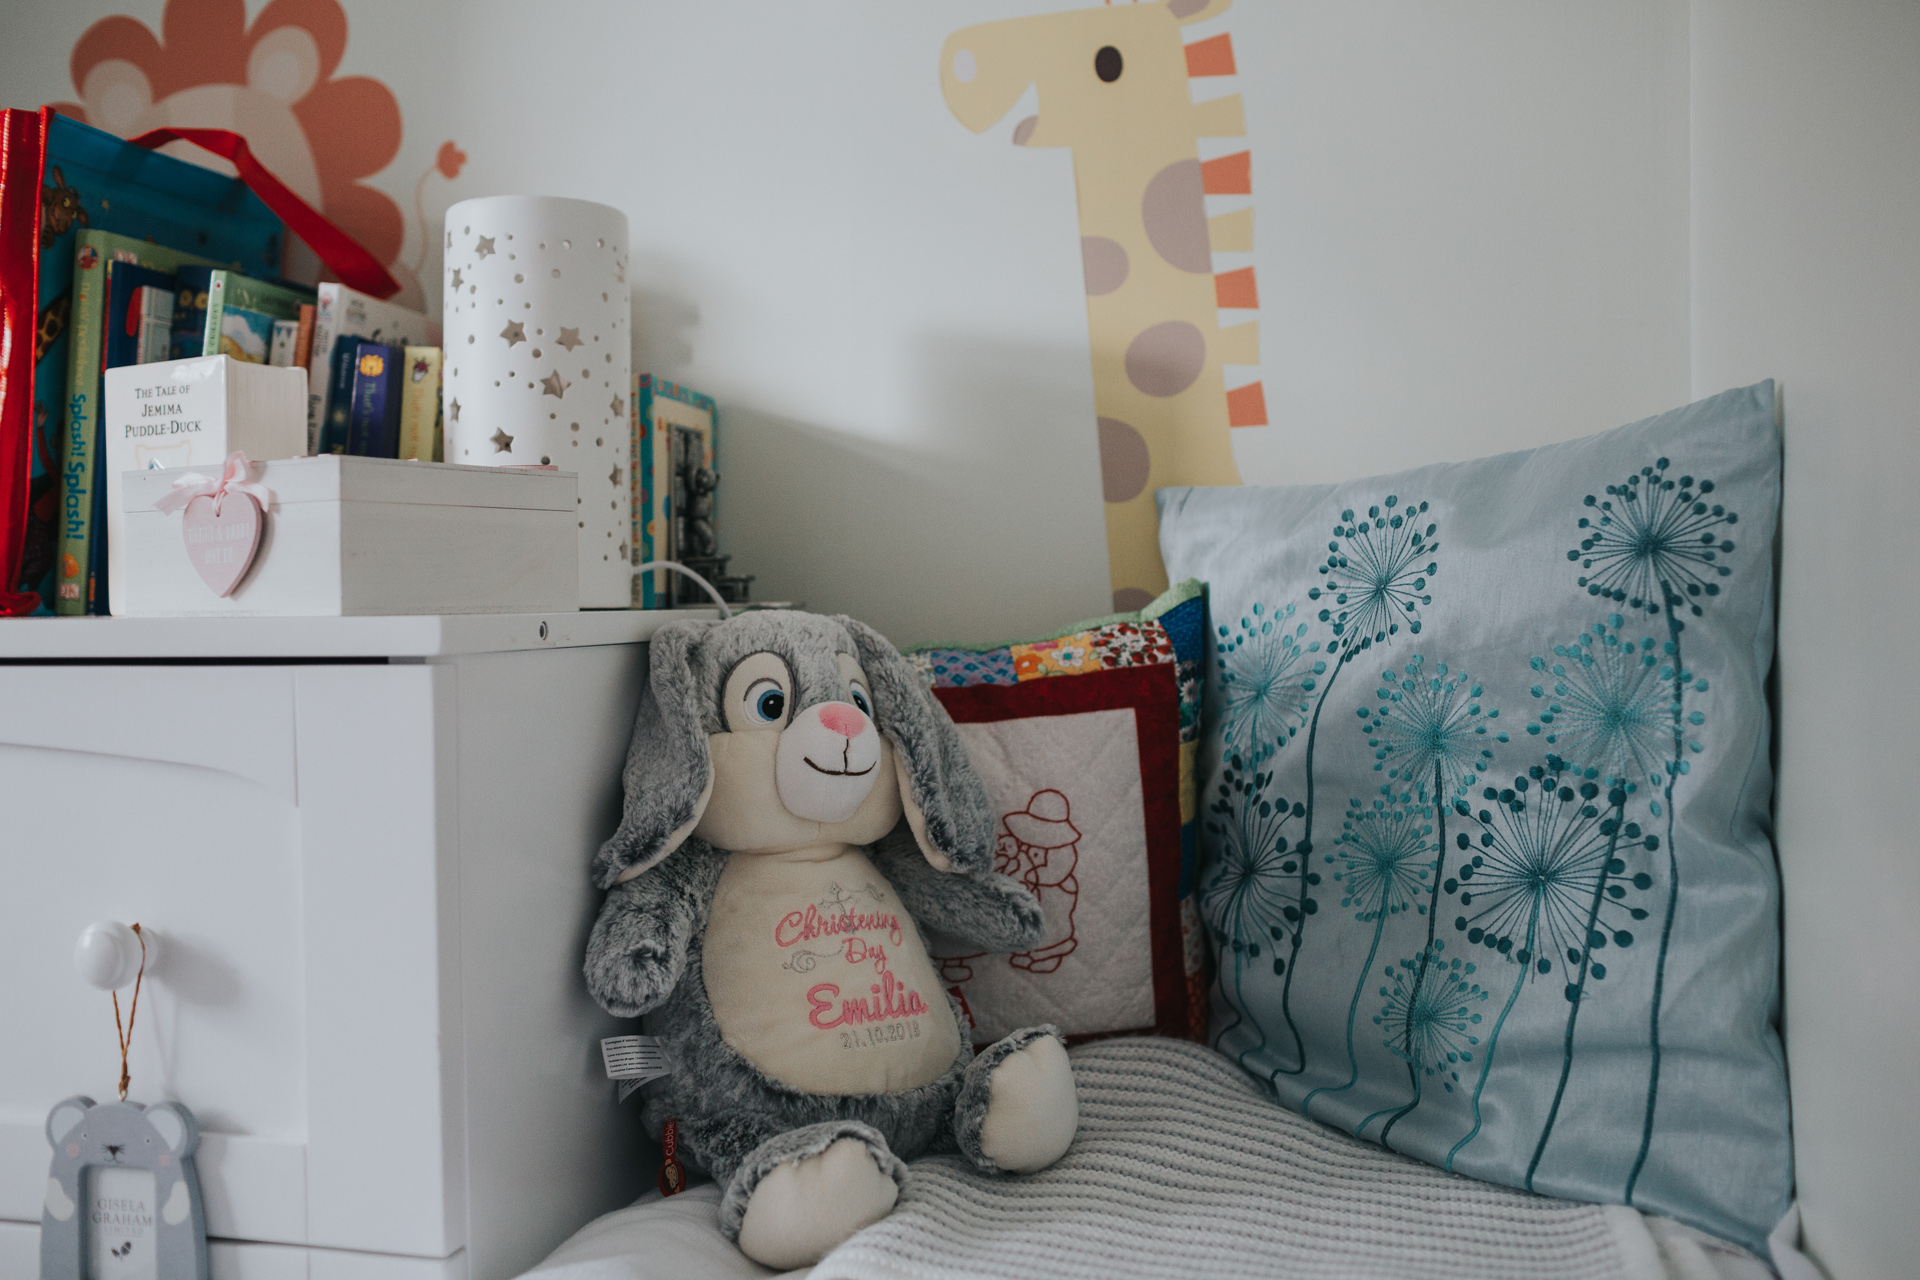 A fluffy toy bunny rabbit sits alongside other toys in the child's bedroom.